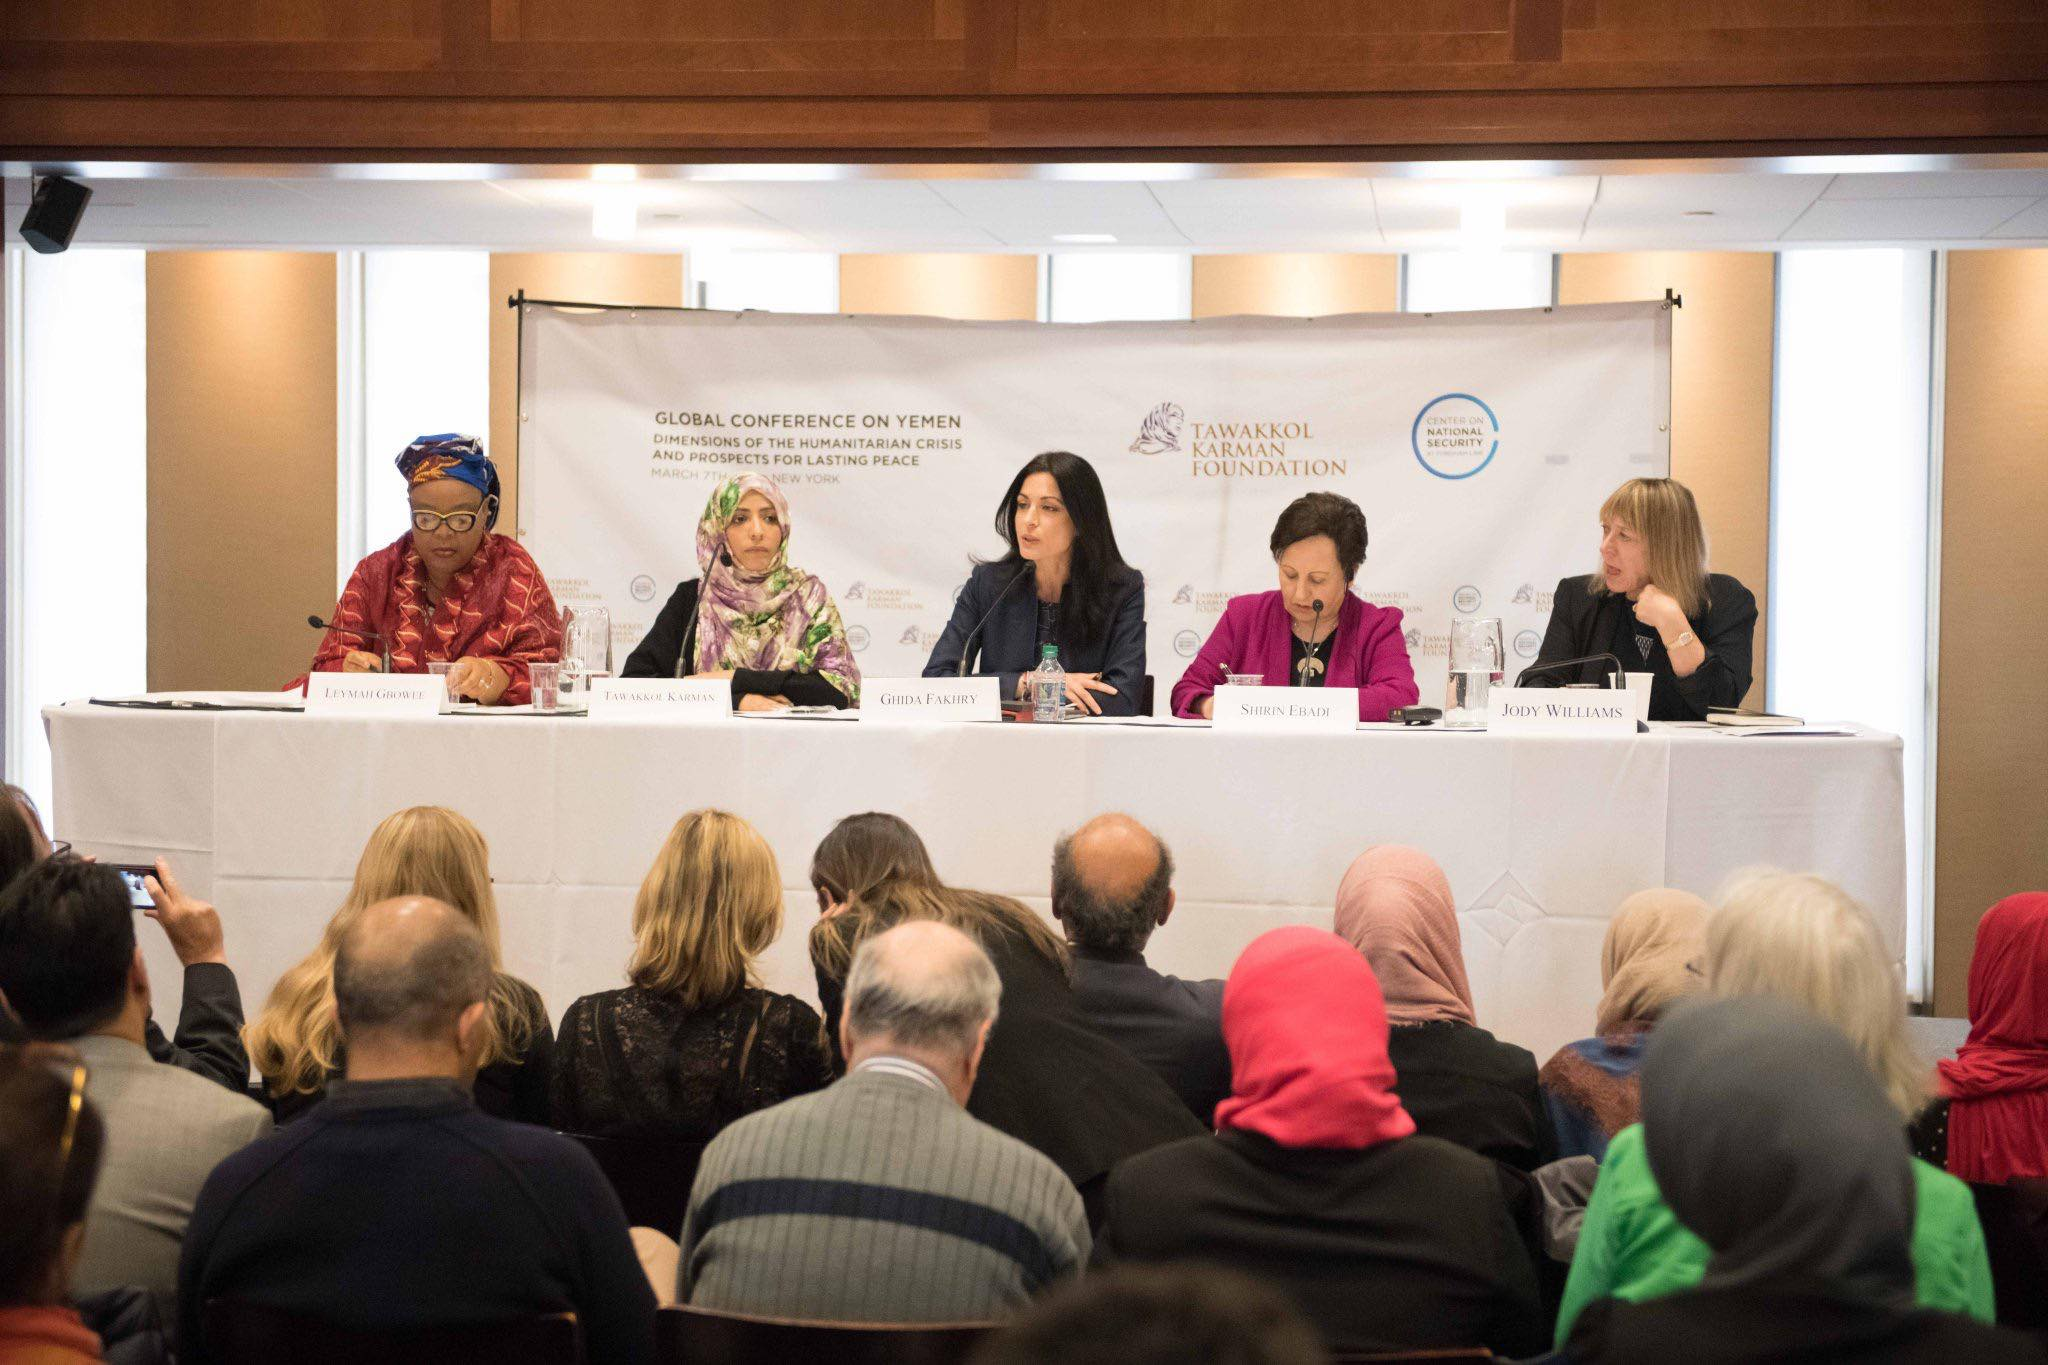 4 women nobel laureate in Tawakkol Karman Foundation conference